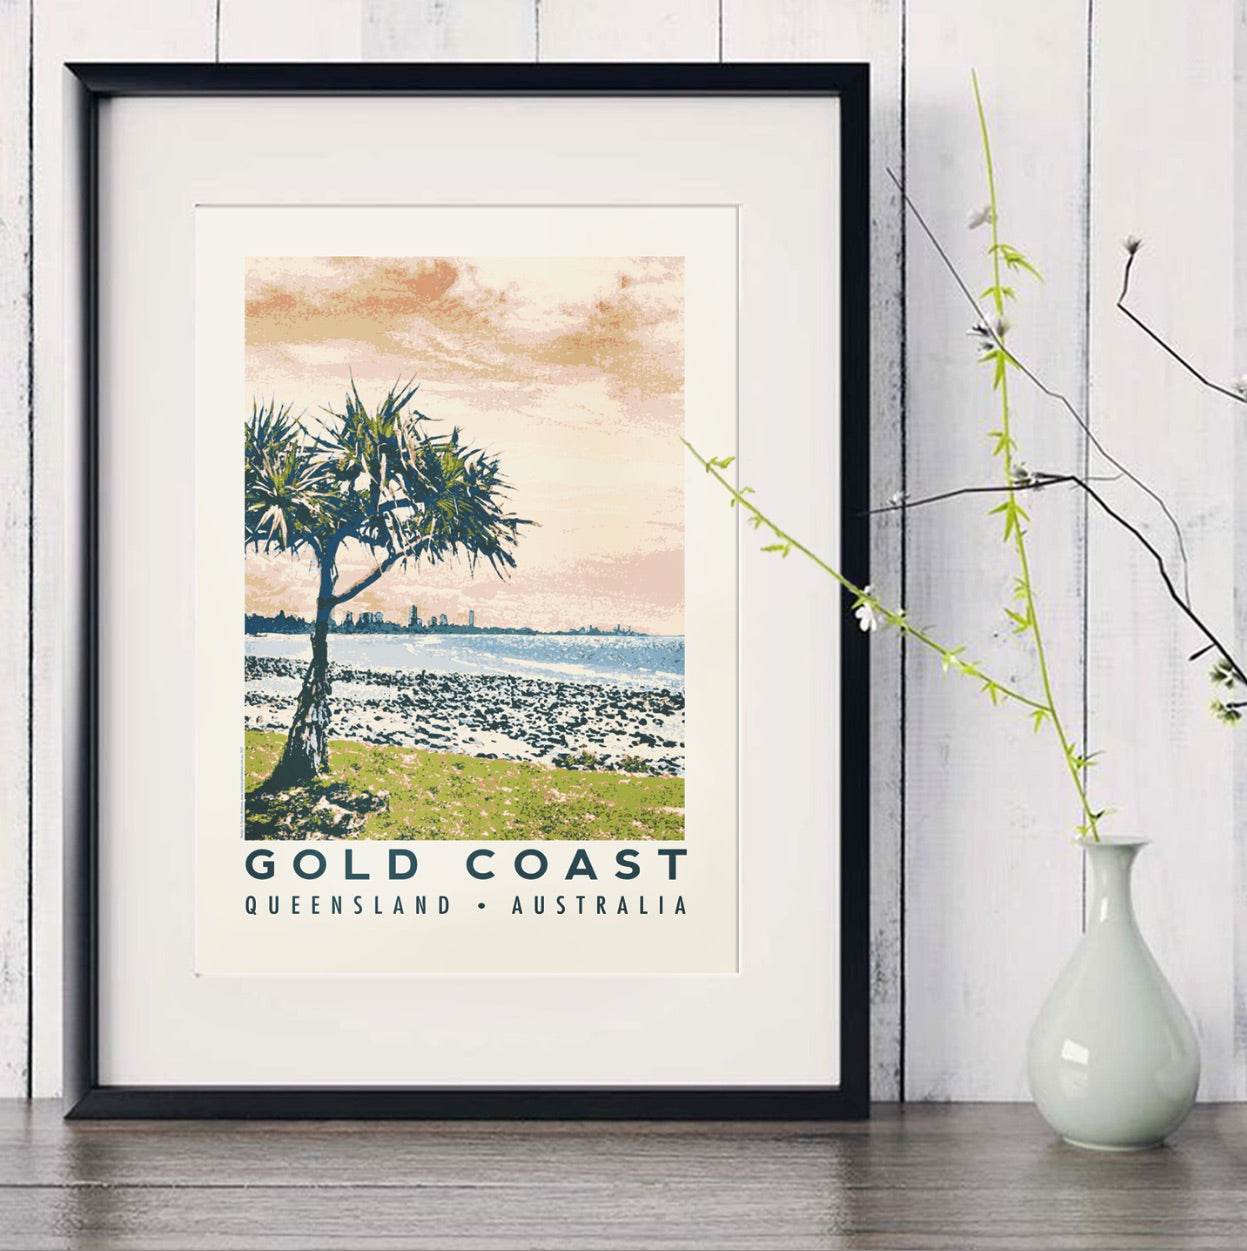 Descart 'Burleigh Heads' art print in frame with vase